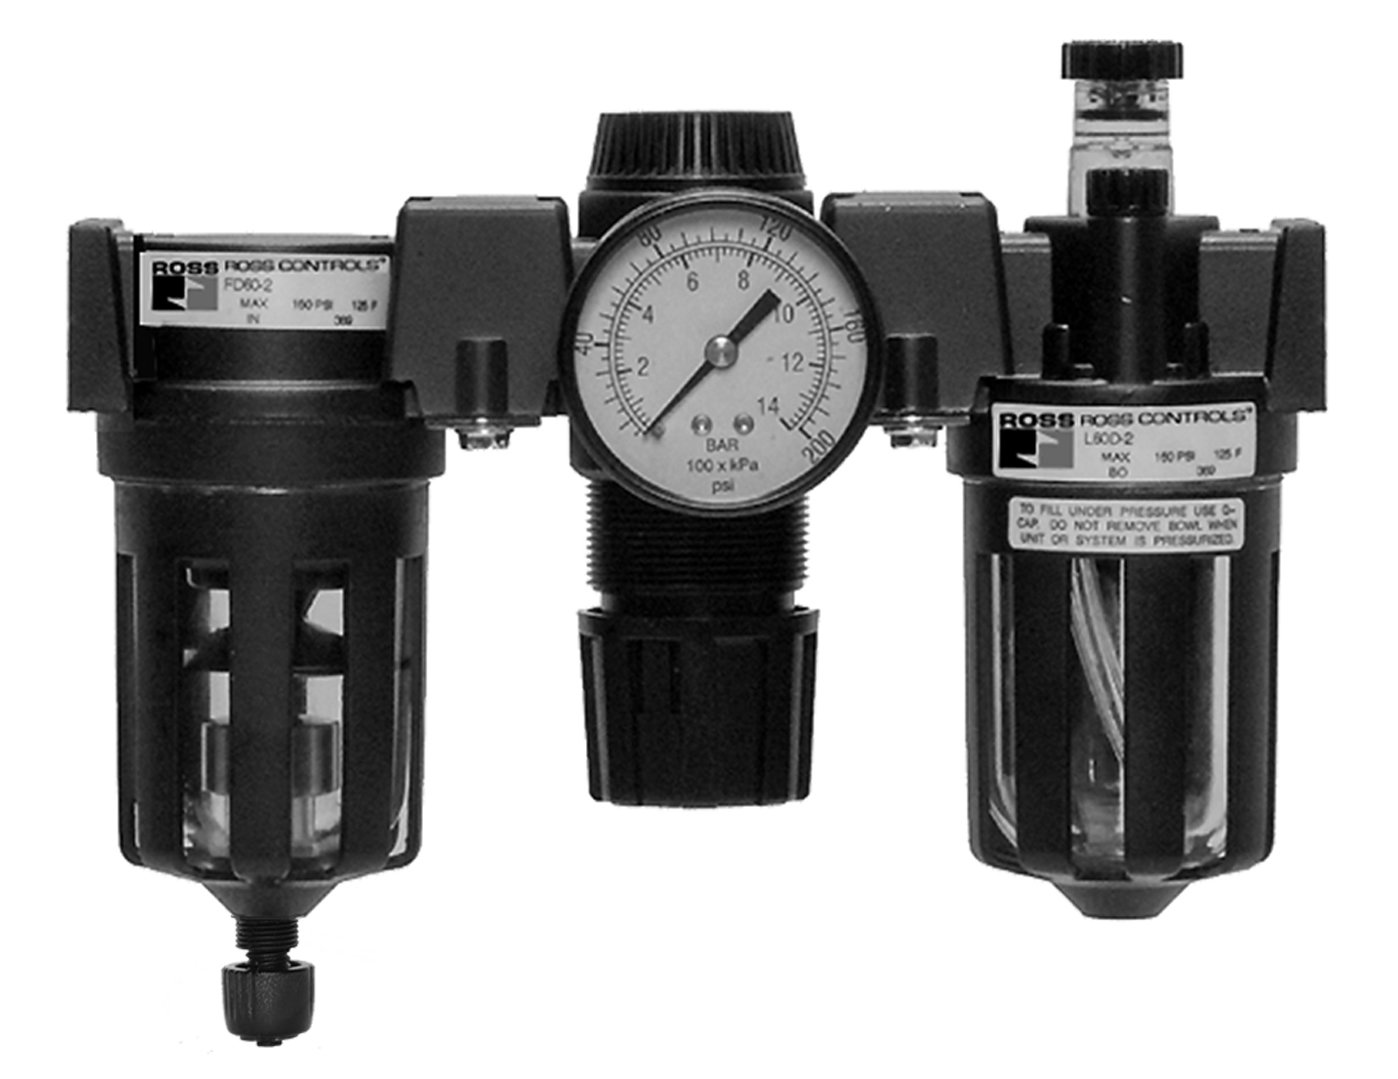 120 5 /µm Polyethylene Filter Polycarbonate Bowls Ross Controls 5M00B4301 Mid-Size Series Filter Regulator Plus Lubricator 4 0-6.9 0-100 Pipe Nipples 1//2 NPT Pipe Nipples 1//2 NPT Piston psi No Gauge